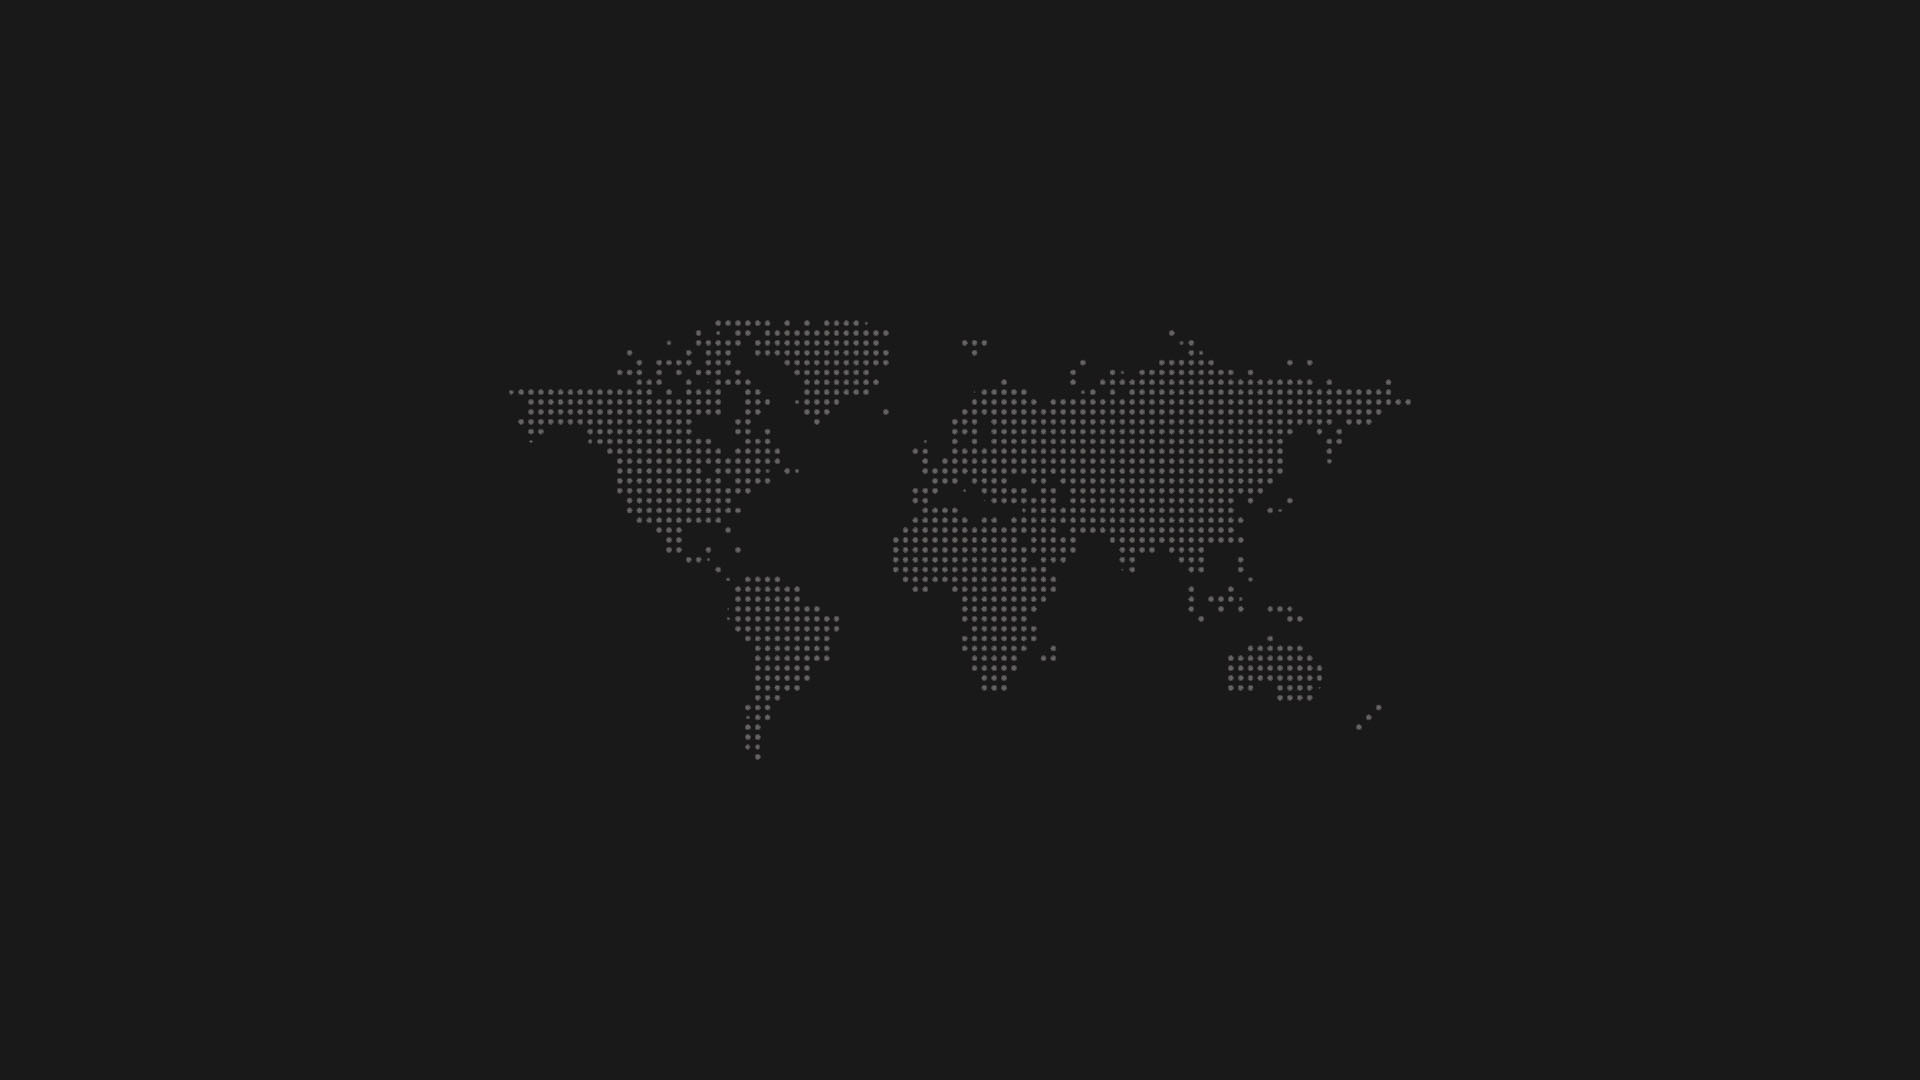 World map wallpapers 66 background pictures 2560x1600 black white world map wallpaper hd gumiabroncs Choice Image